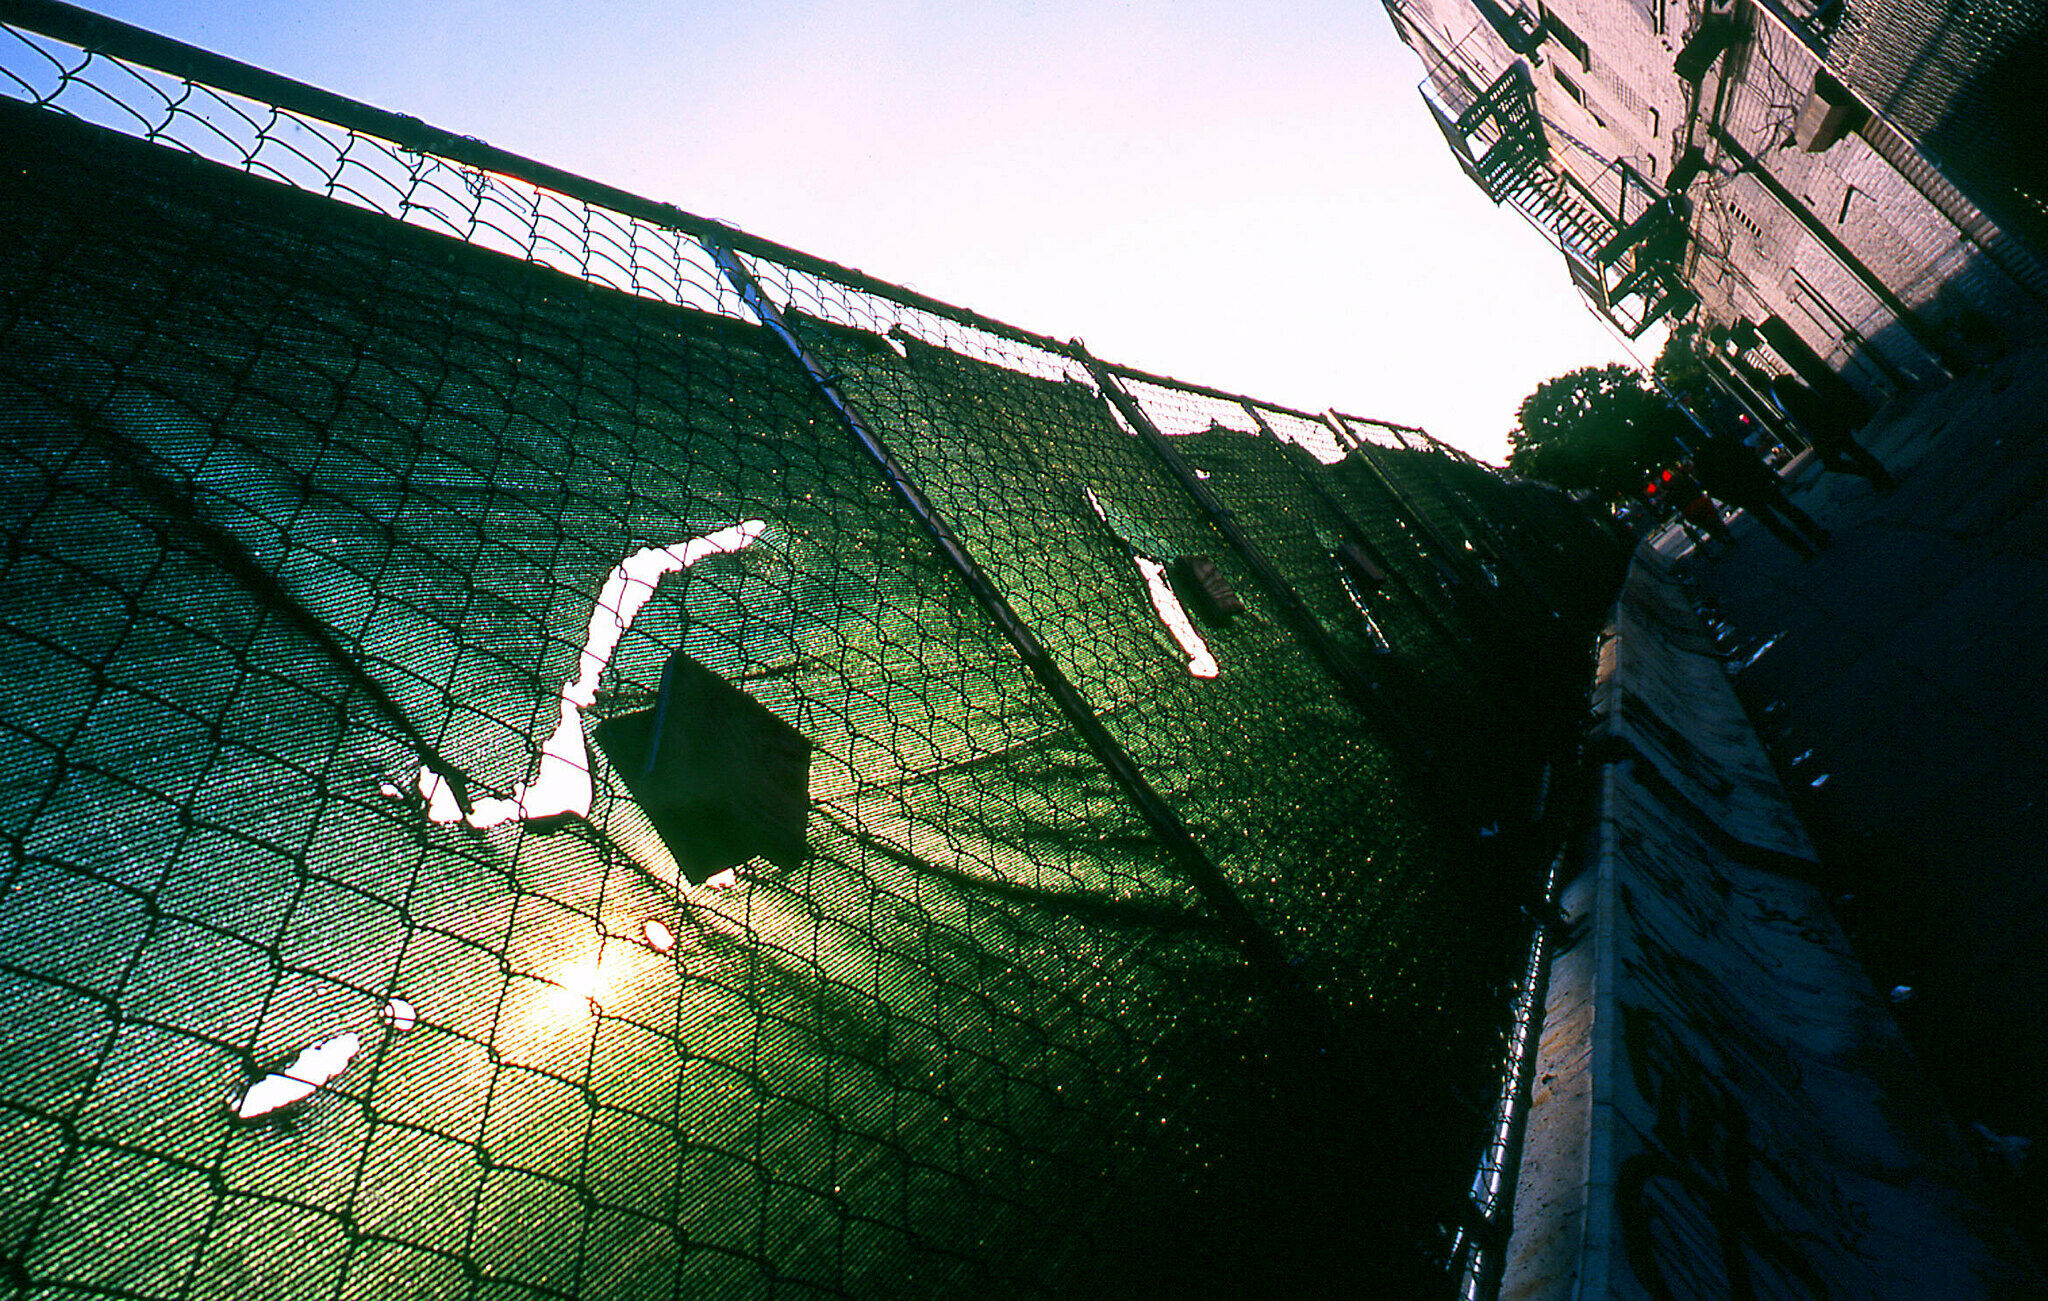 A green fabric covers an outdoor fence with the sun shining through.